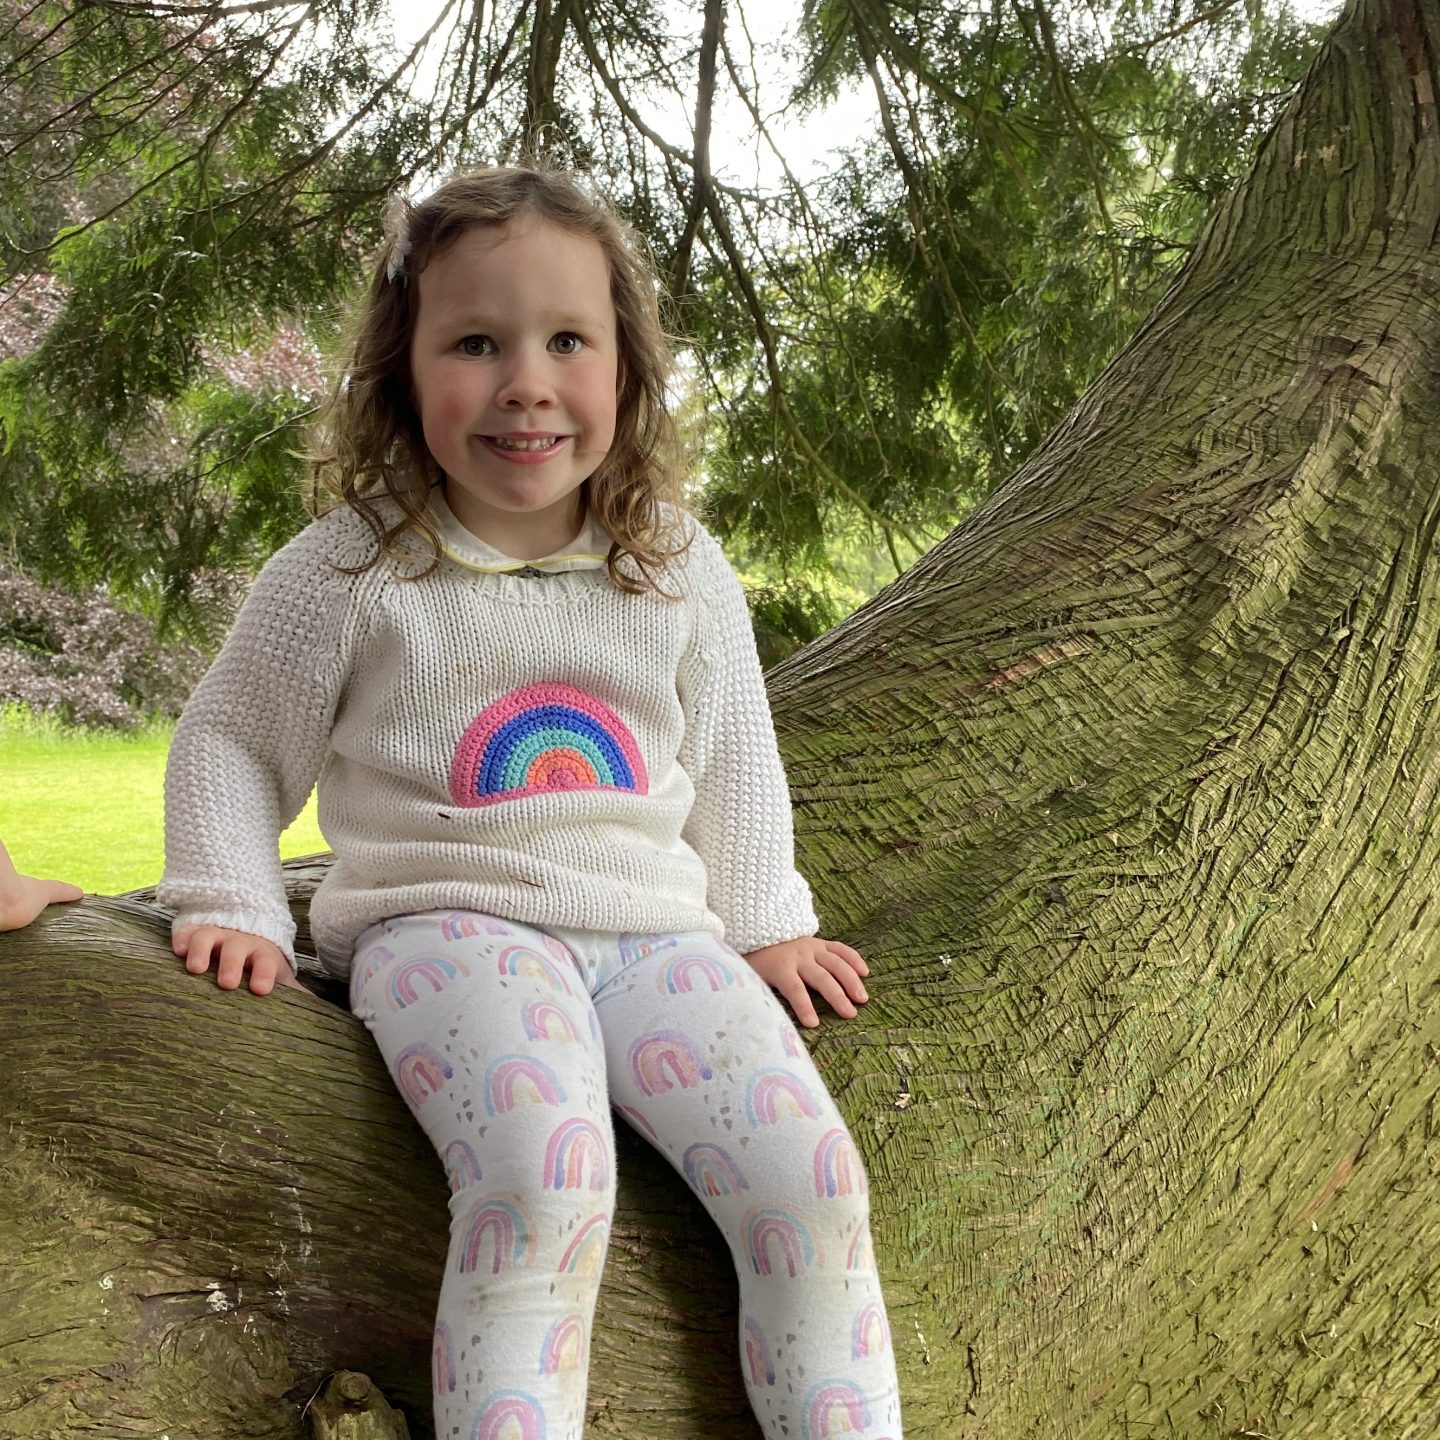 A girl wearing a rainbow jumper sat in a tree